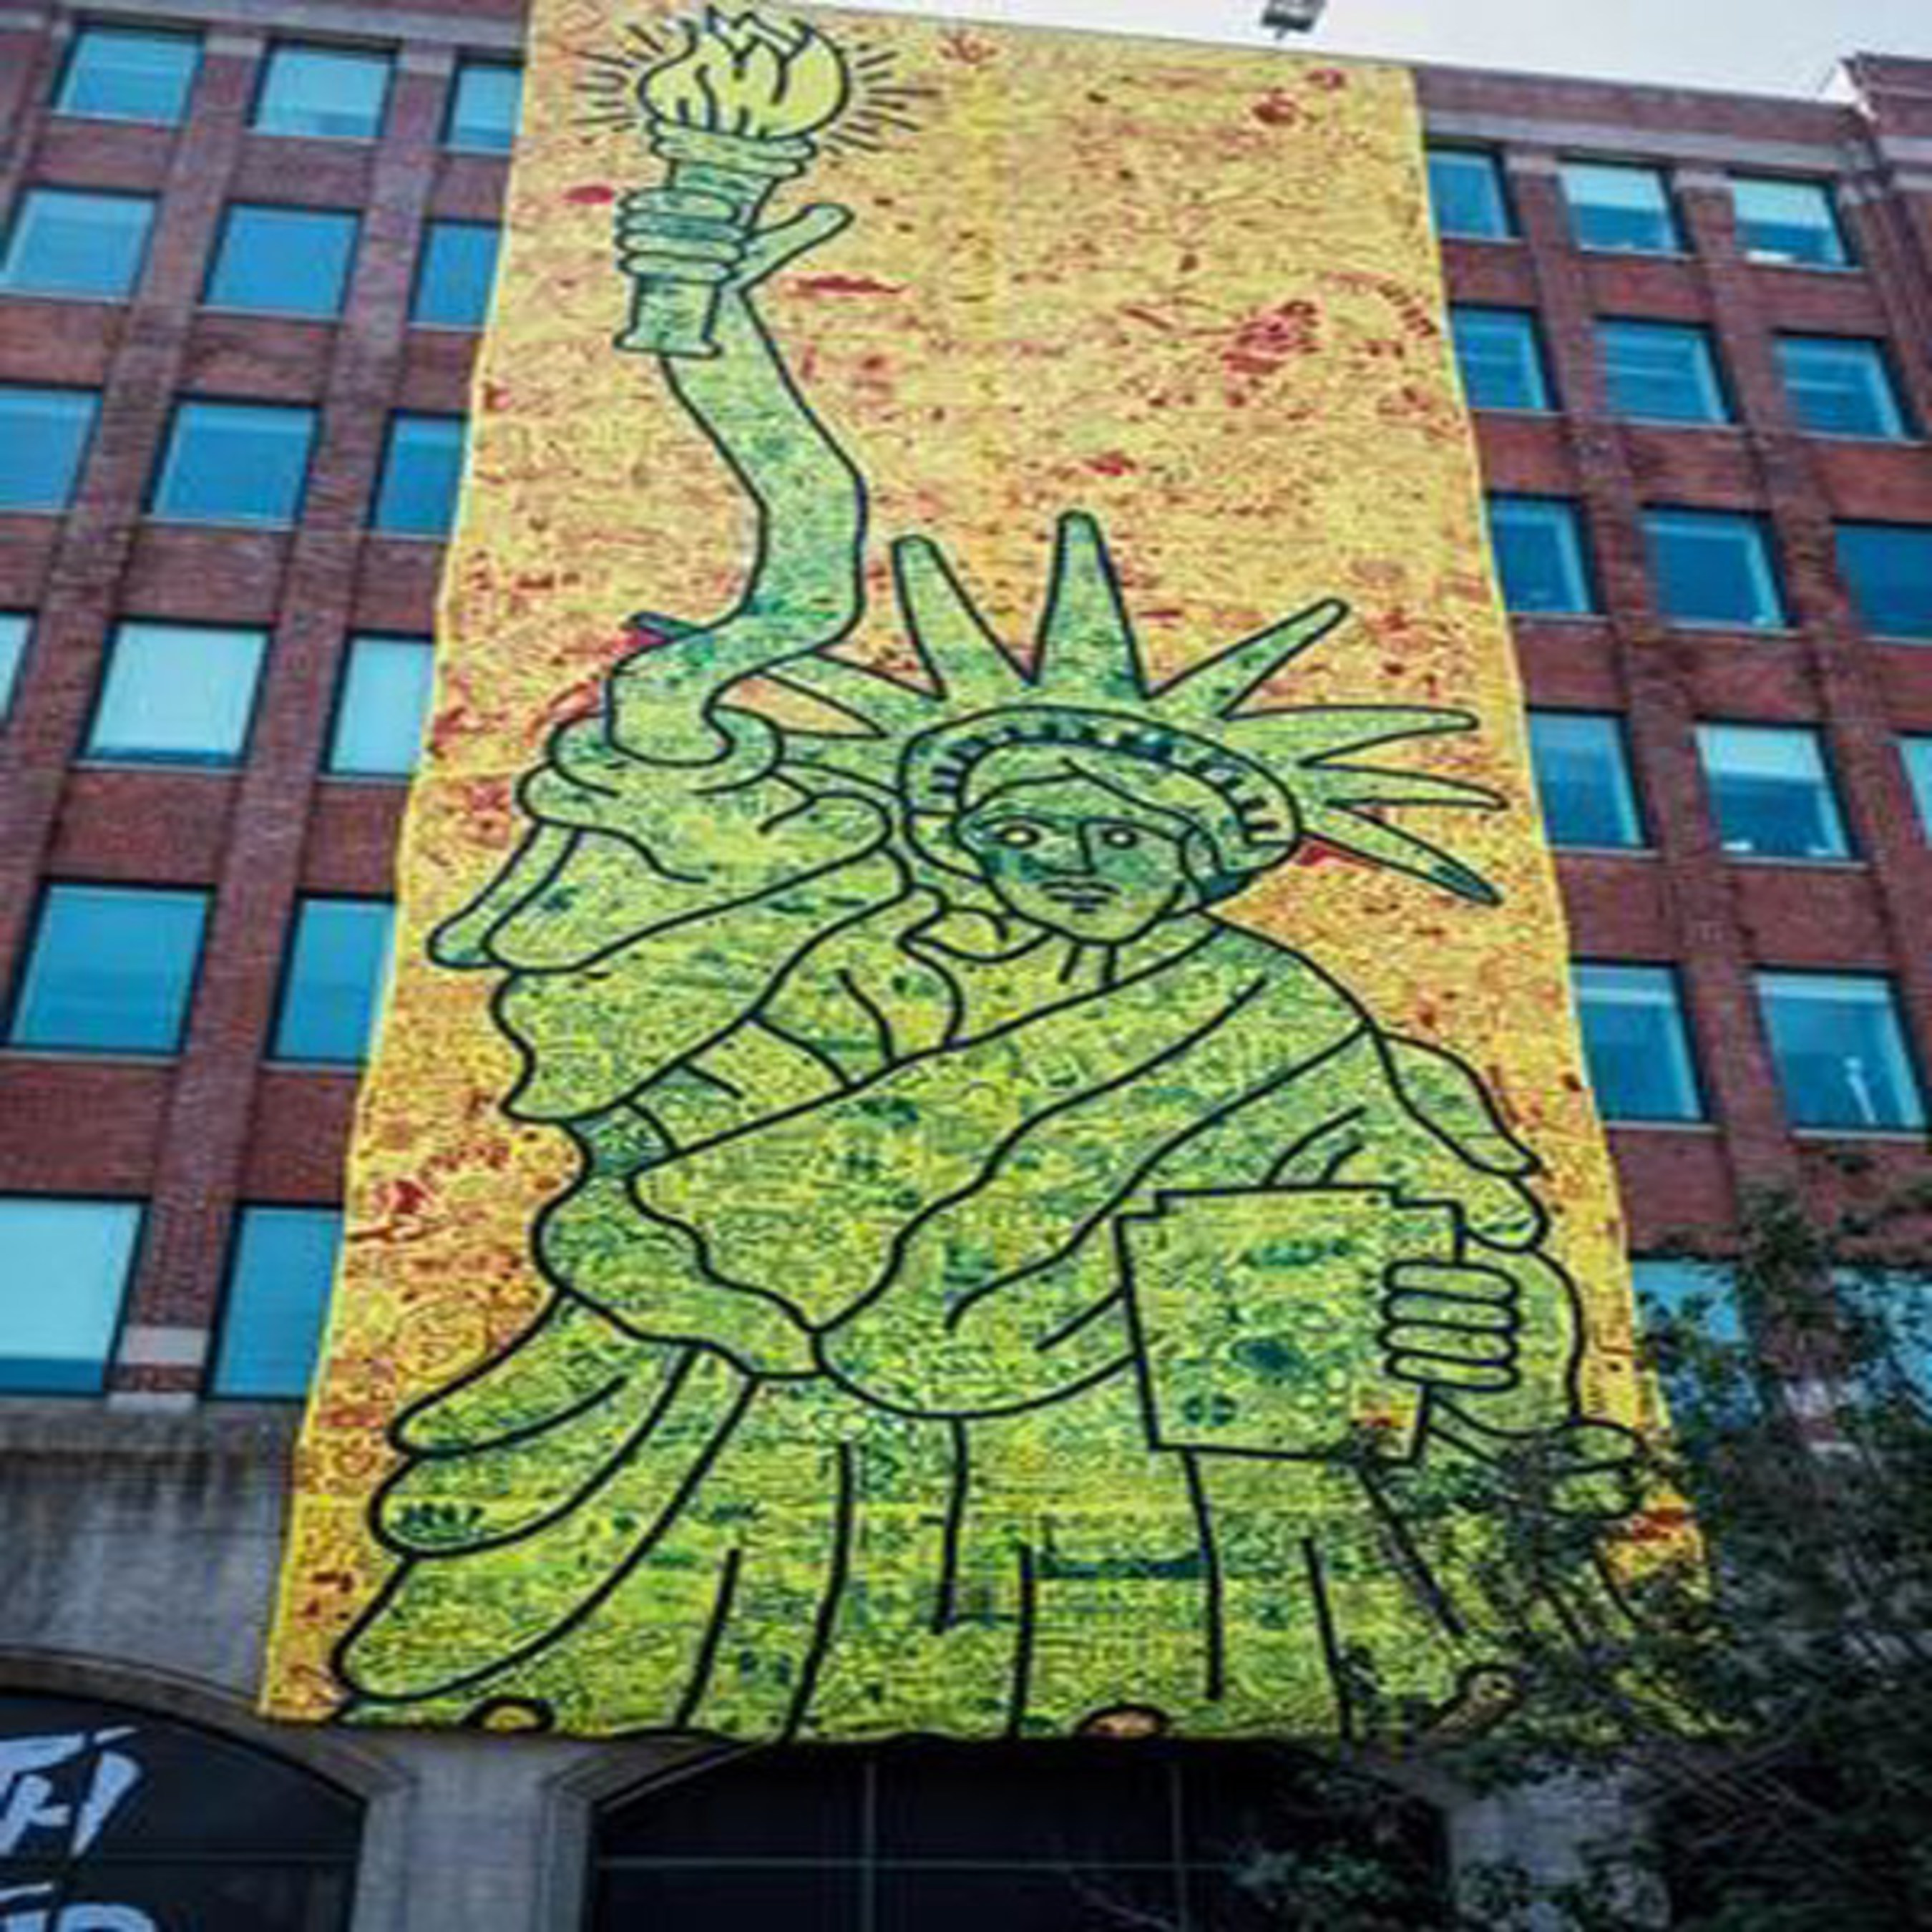 Largest Piece of Keith Haring's Artwork Used as Backdrop for Democratic National Convention Exhibition